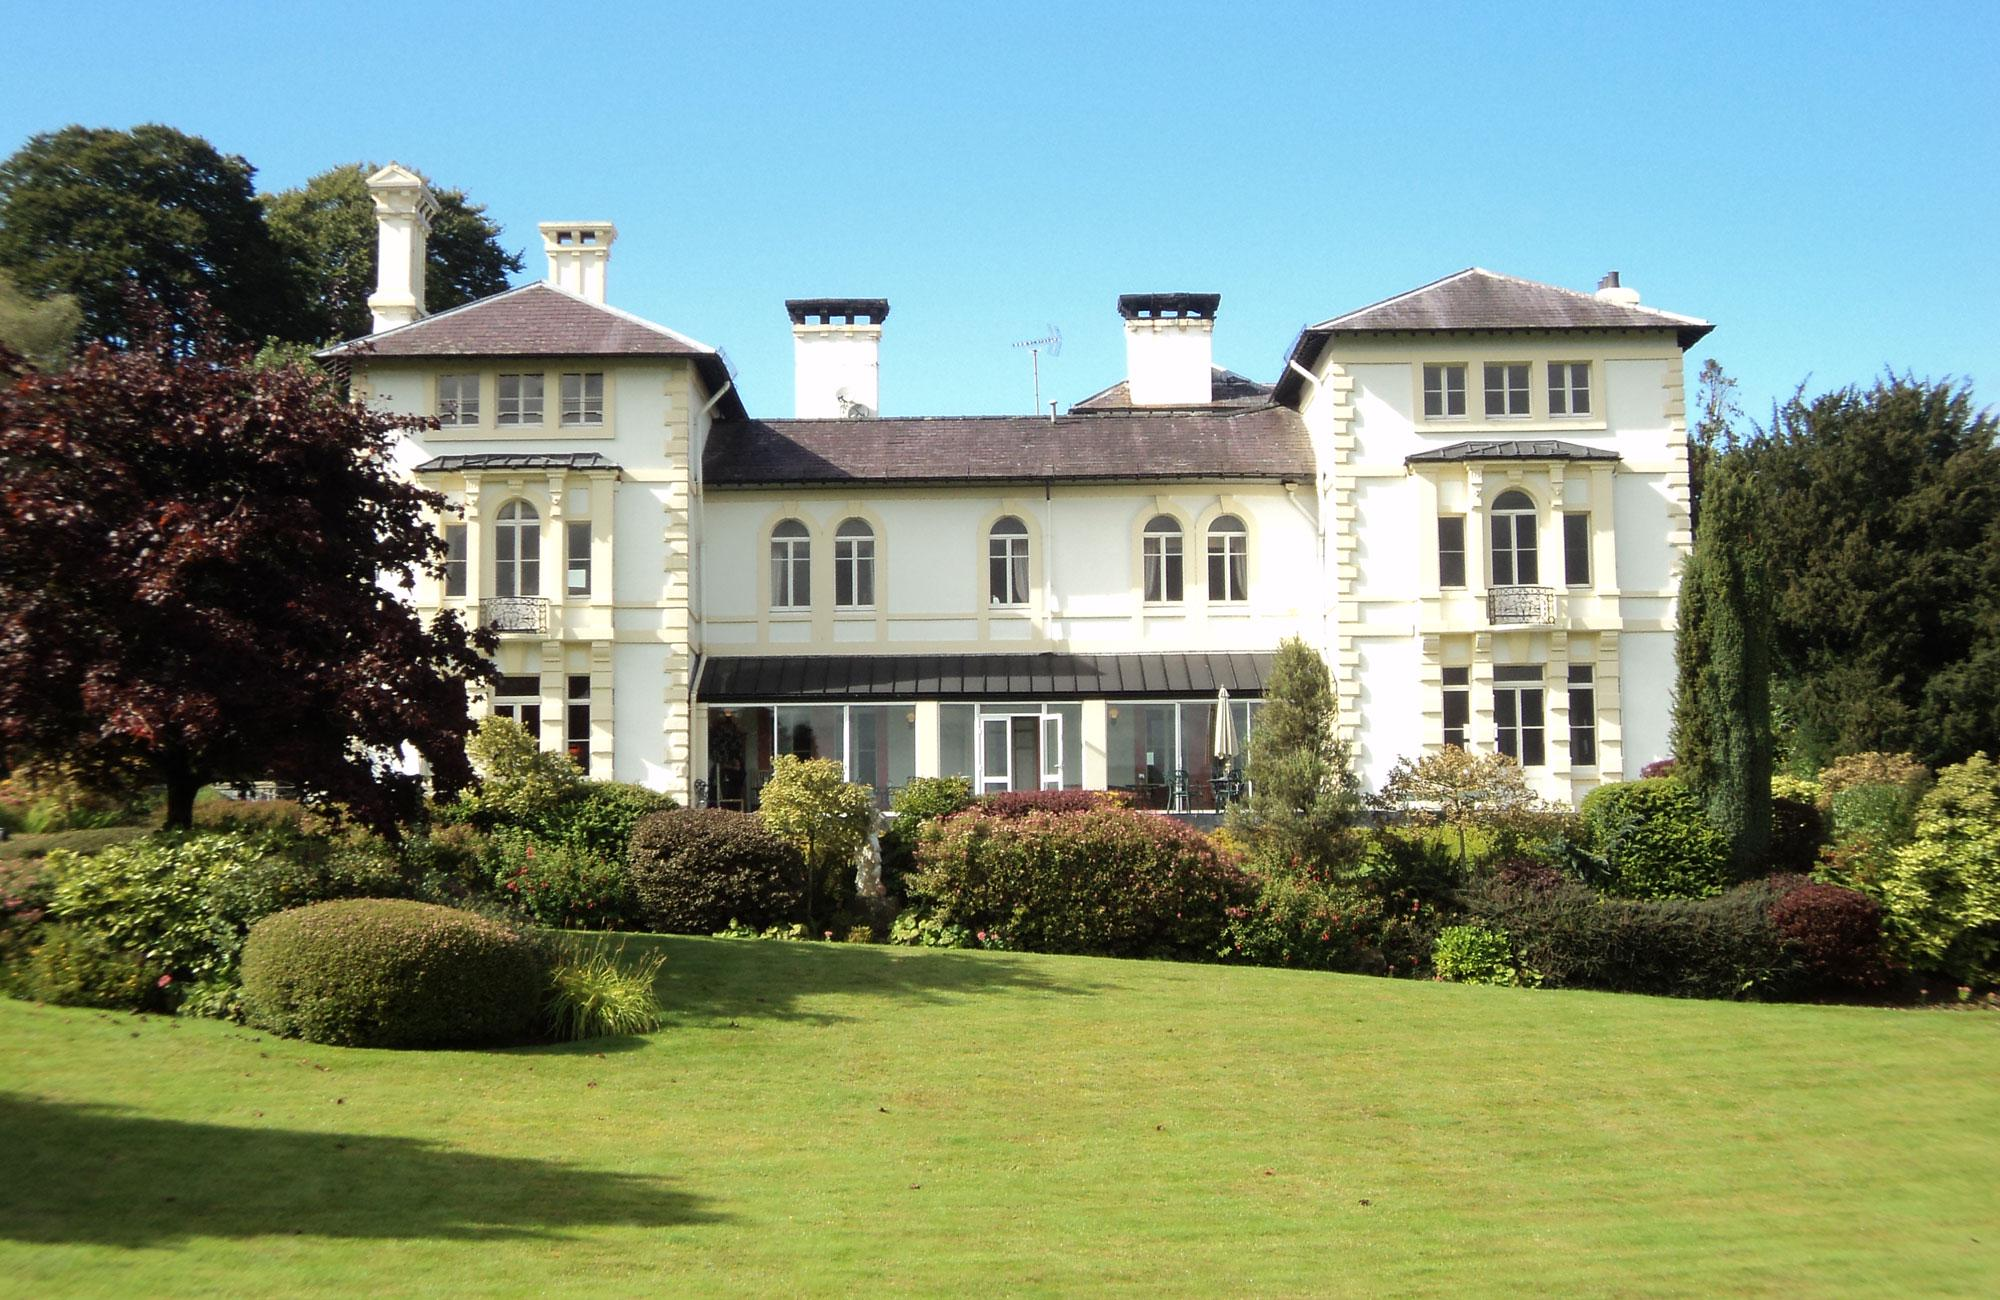 Hotels in Lampeter holidays at Cool Places